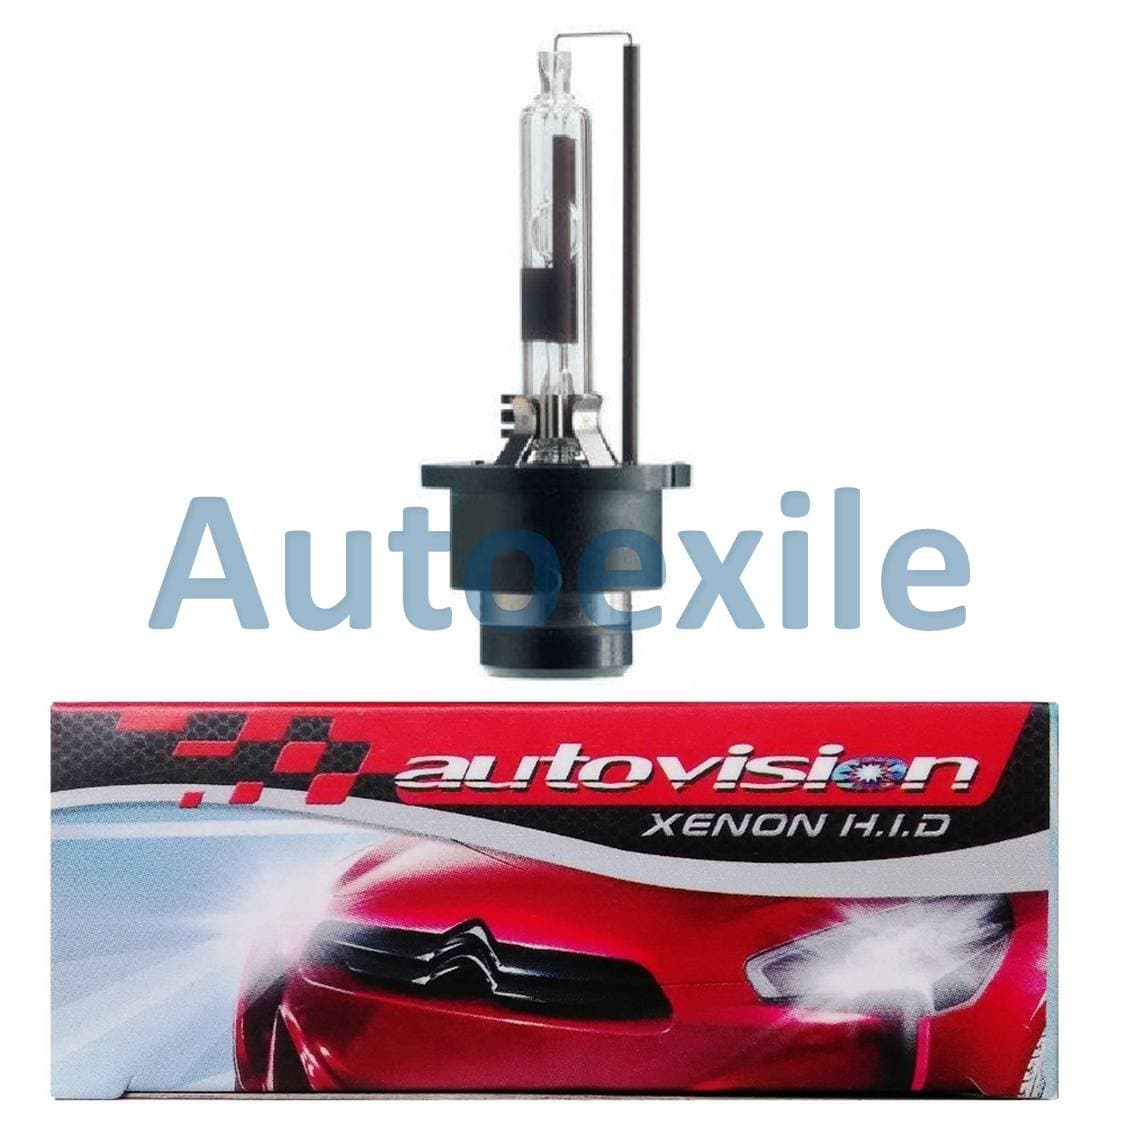 Autovision Xenon HID Carbon D2R 35W Lampu Nissan Juke Avalon Alphard Noah All New Civic Stream Odessay Camry